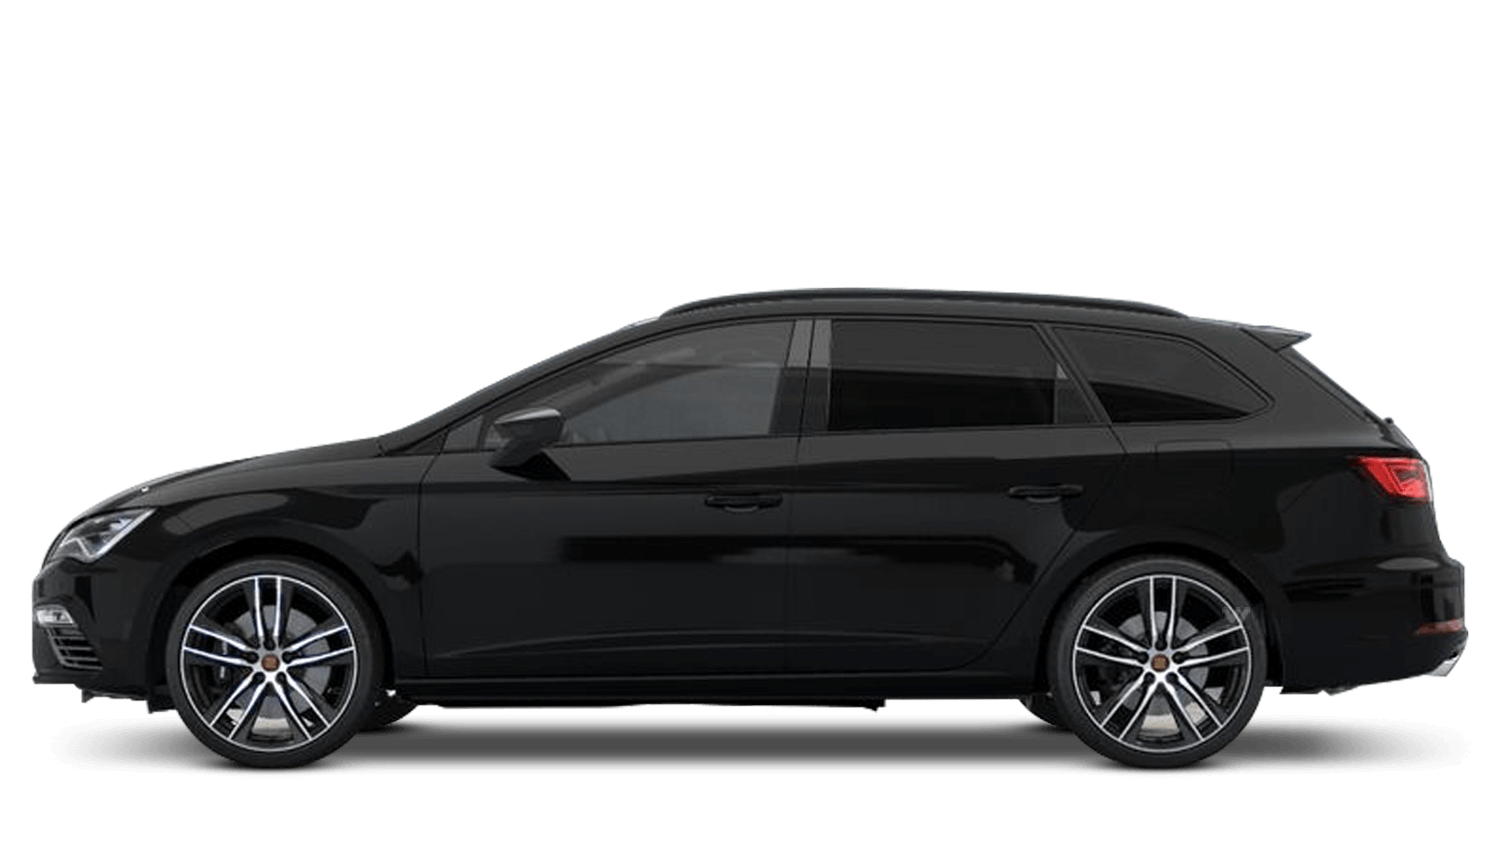 Midnight Black (Metallic) Leon Estate CUPRA